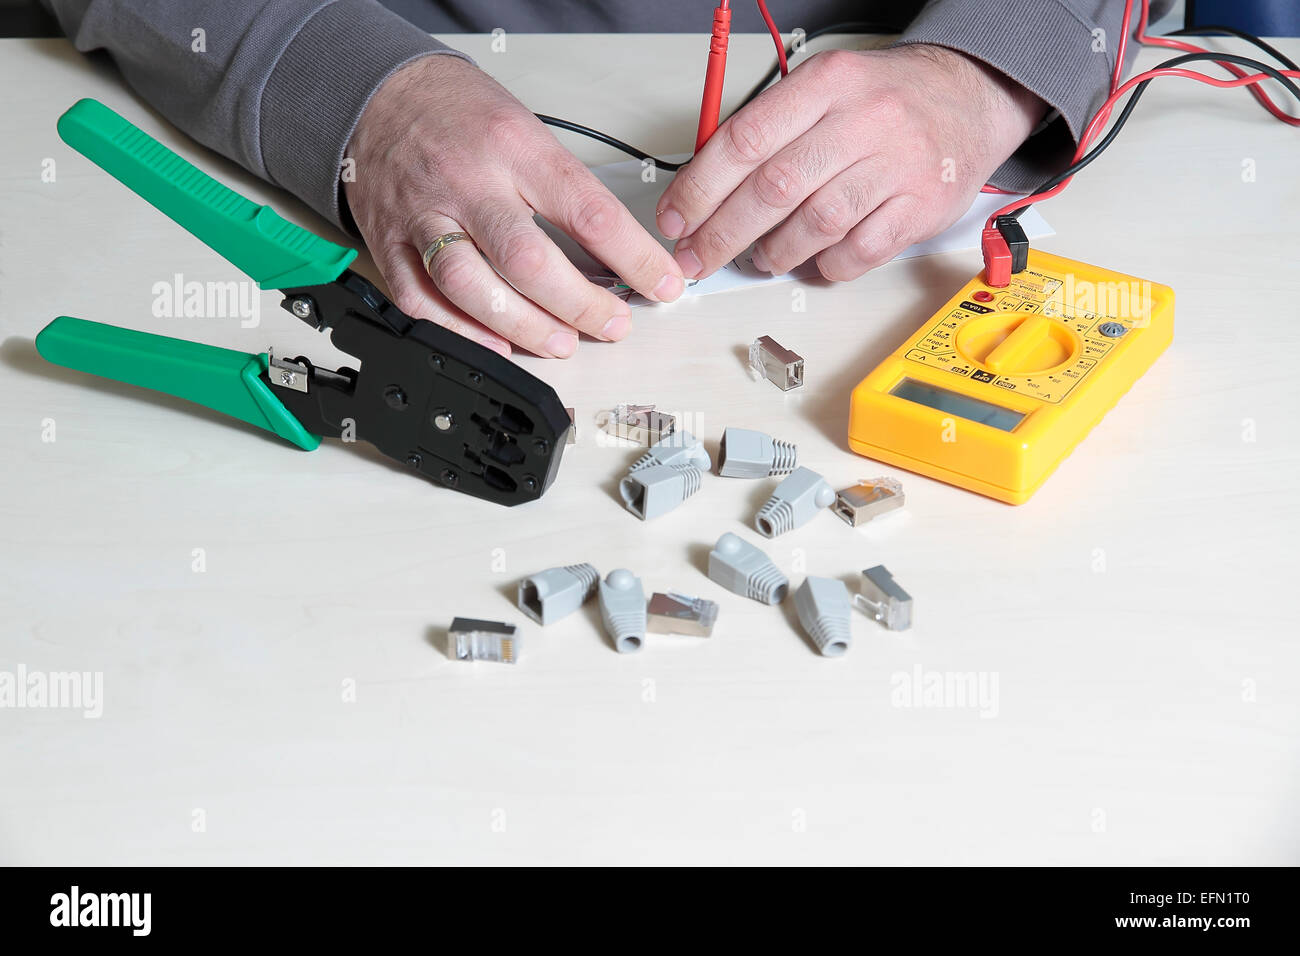 hands using a digital multimeter tester to test a RJ45 connector Stock Photo